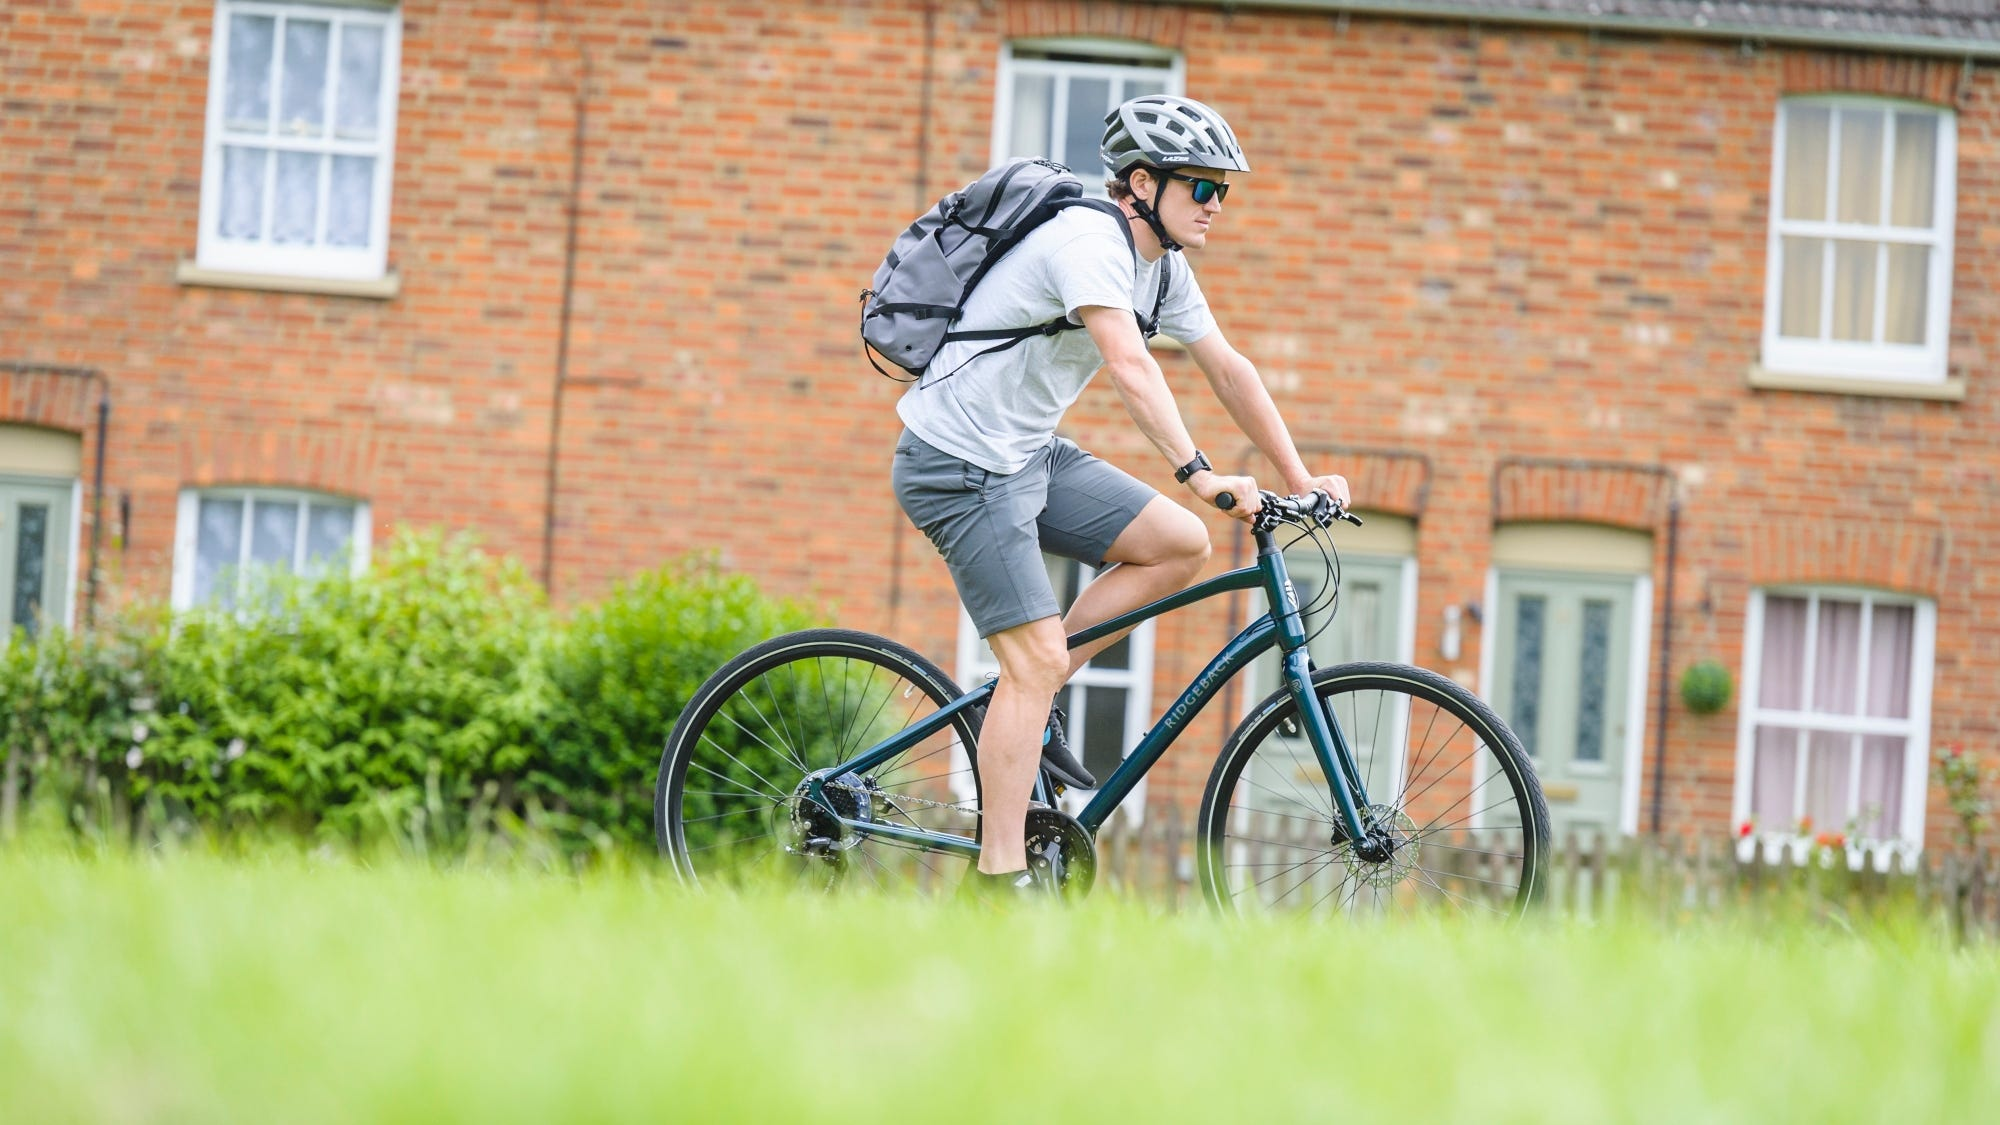 Get involved with Cycle to Work day